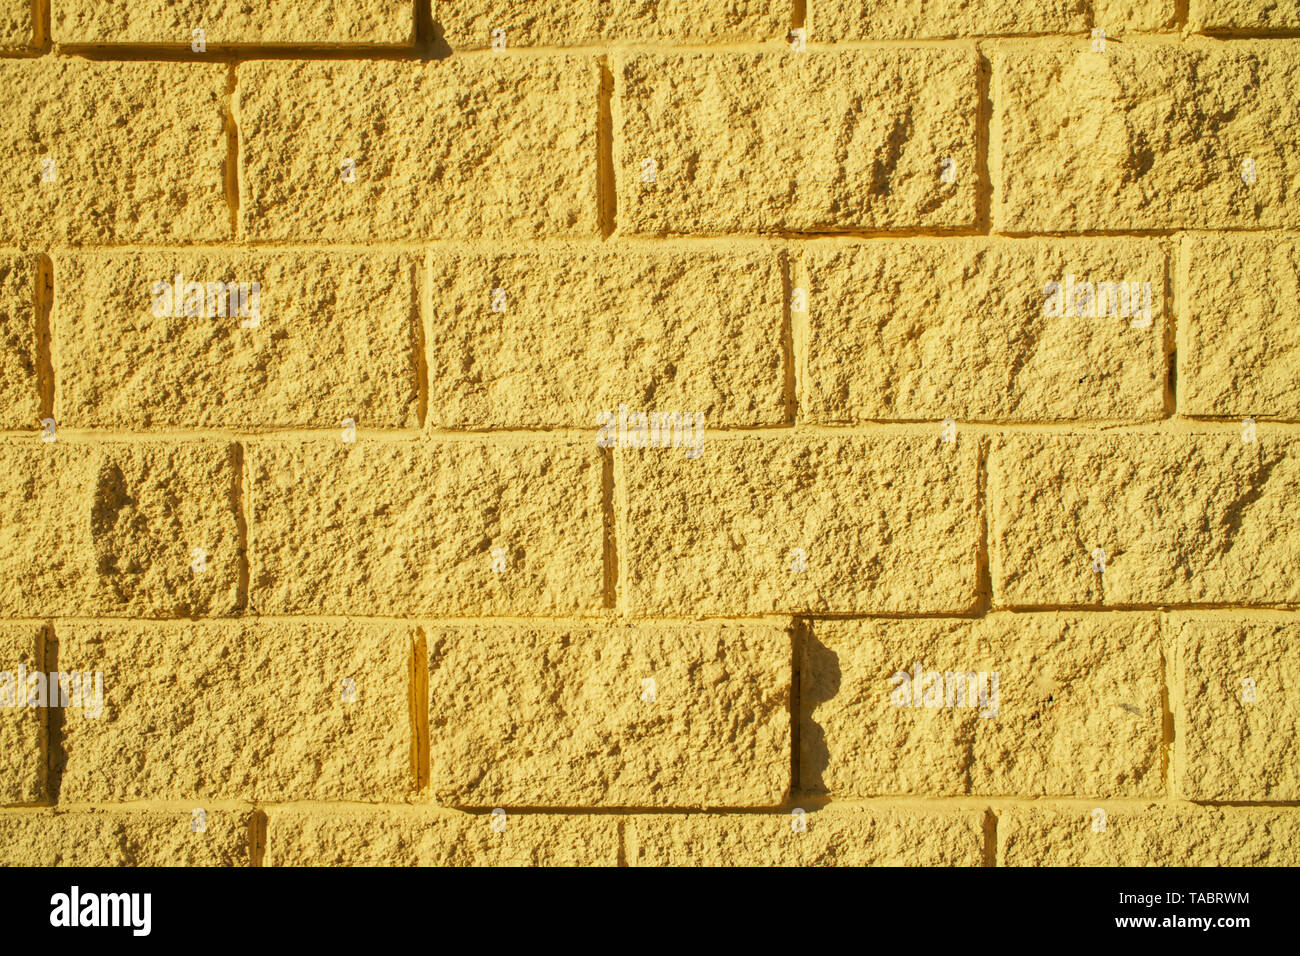 Decorative Imitation Of Brickwork Light Yellow Color The Wall Of